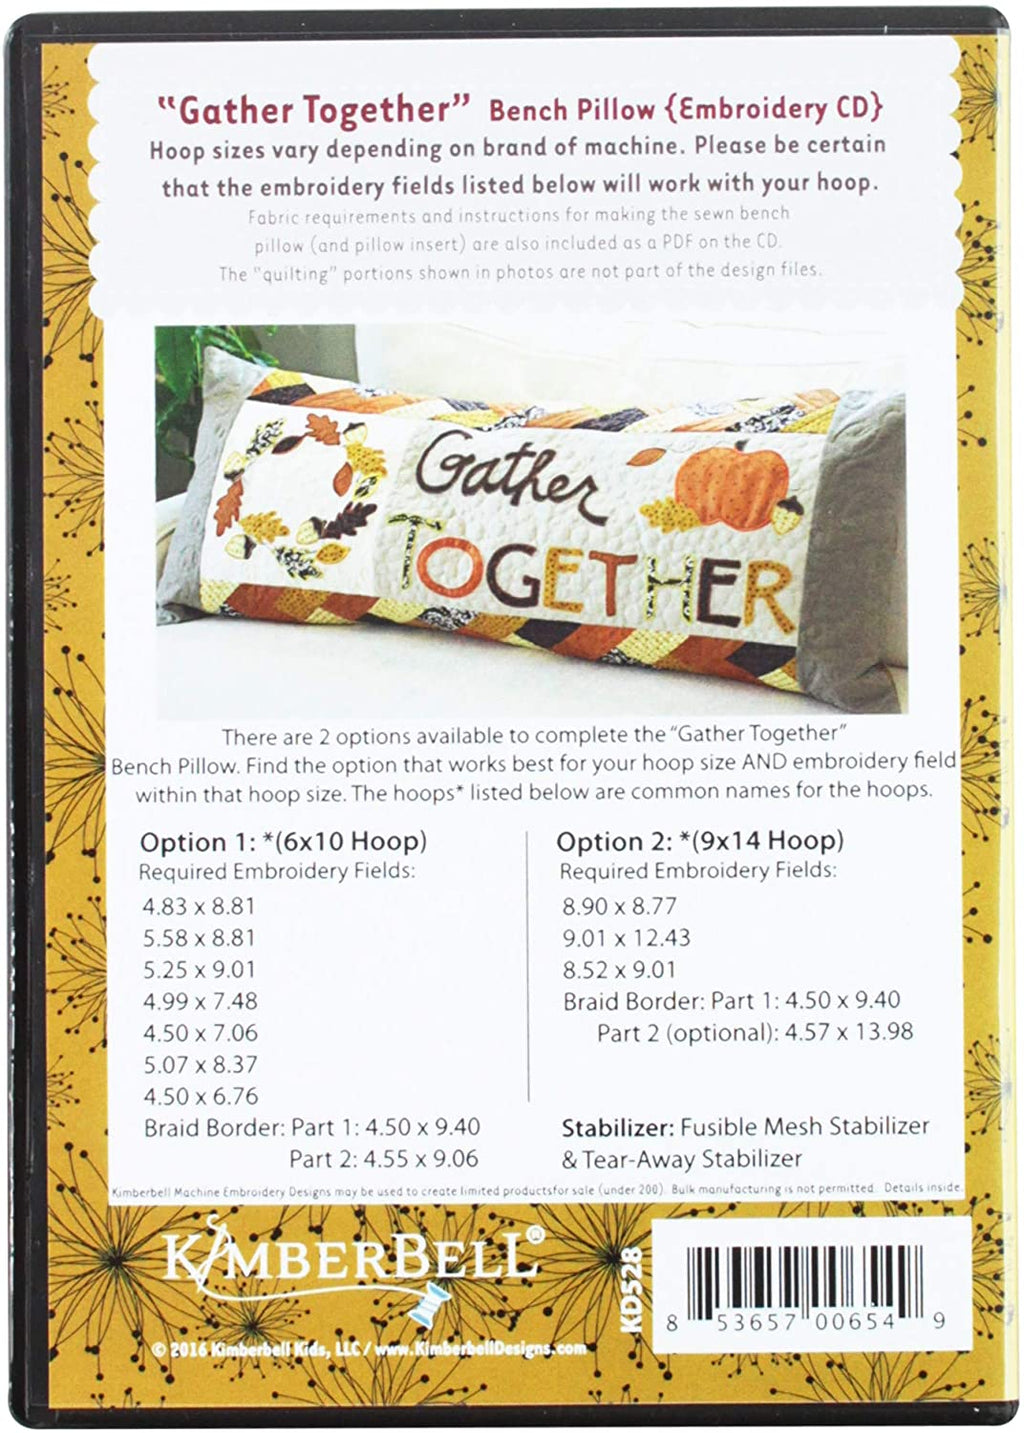 KimberBell - Gather Together - Bench Pillow Machine Embroidery CD